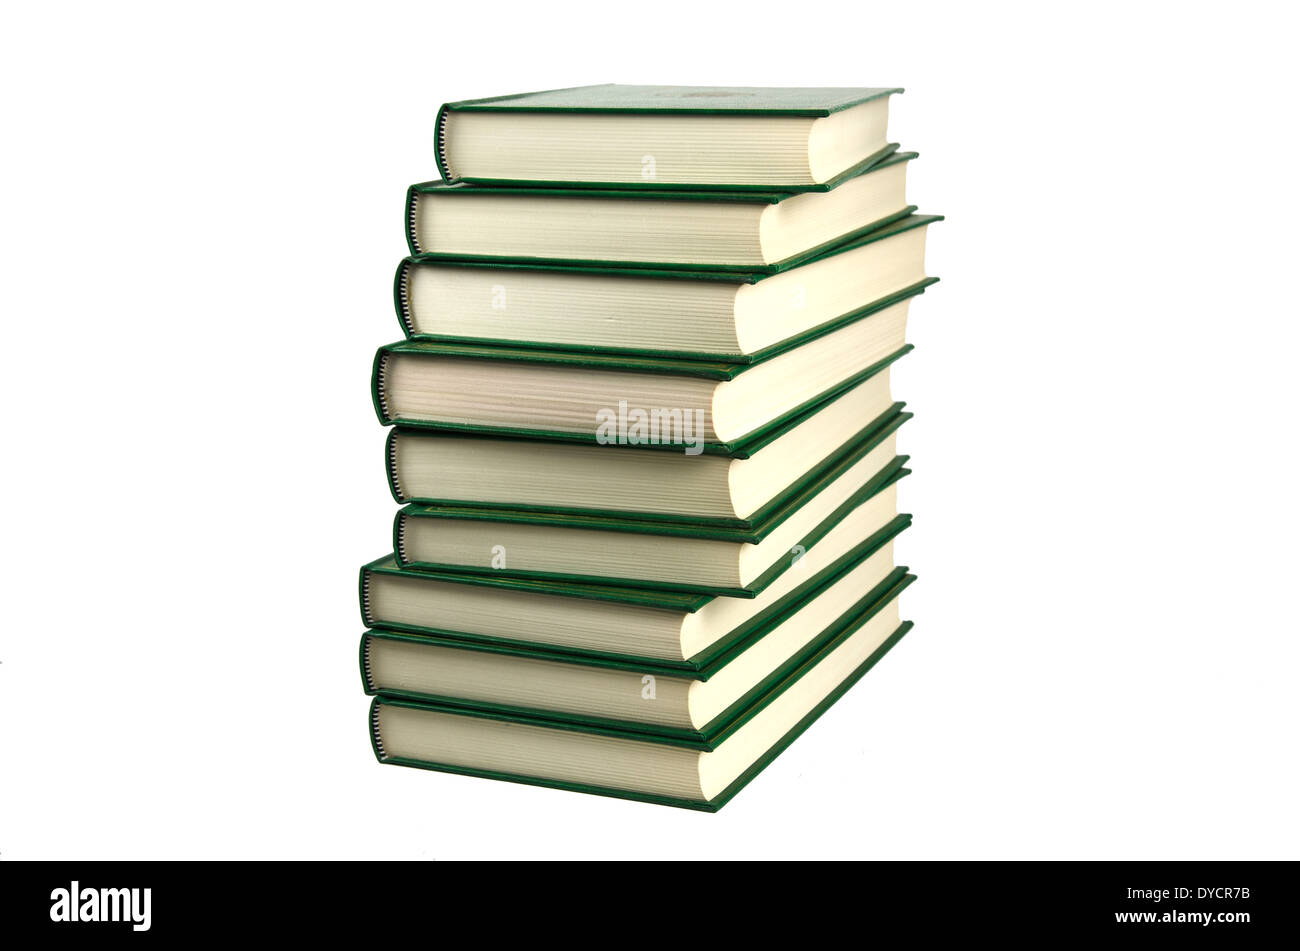 Pile of books with green covers at a white background - Stock Image